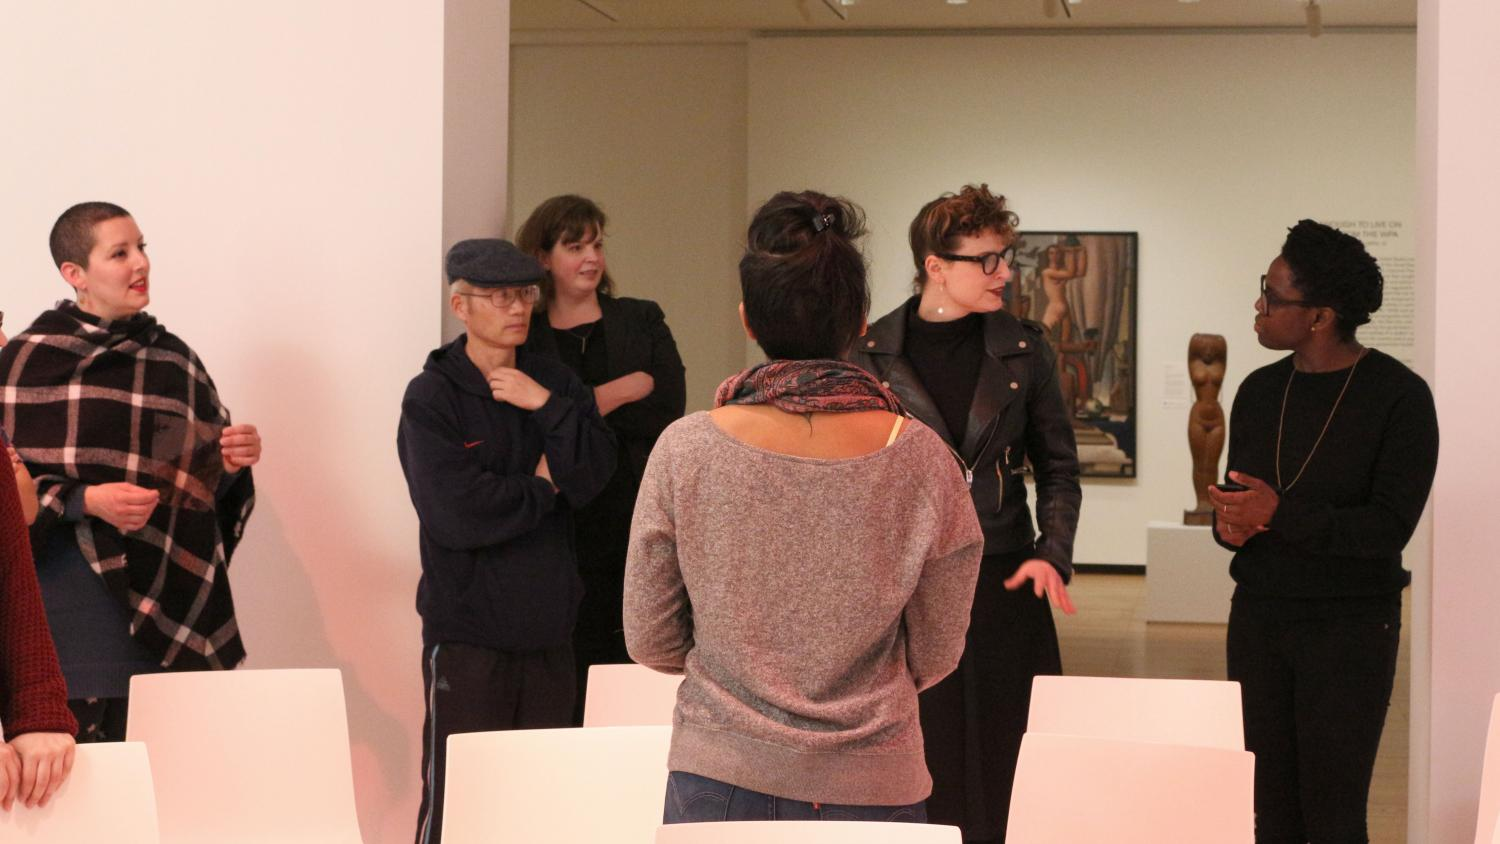 Autumn Knight (far right) and Kelley Hershman converse during the performance of Here and Now at Krannert Art Museum (2017). Photo by Julia Nucci Kelly.